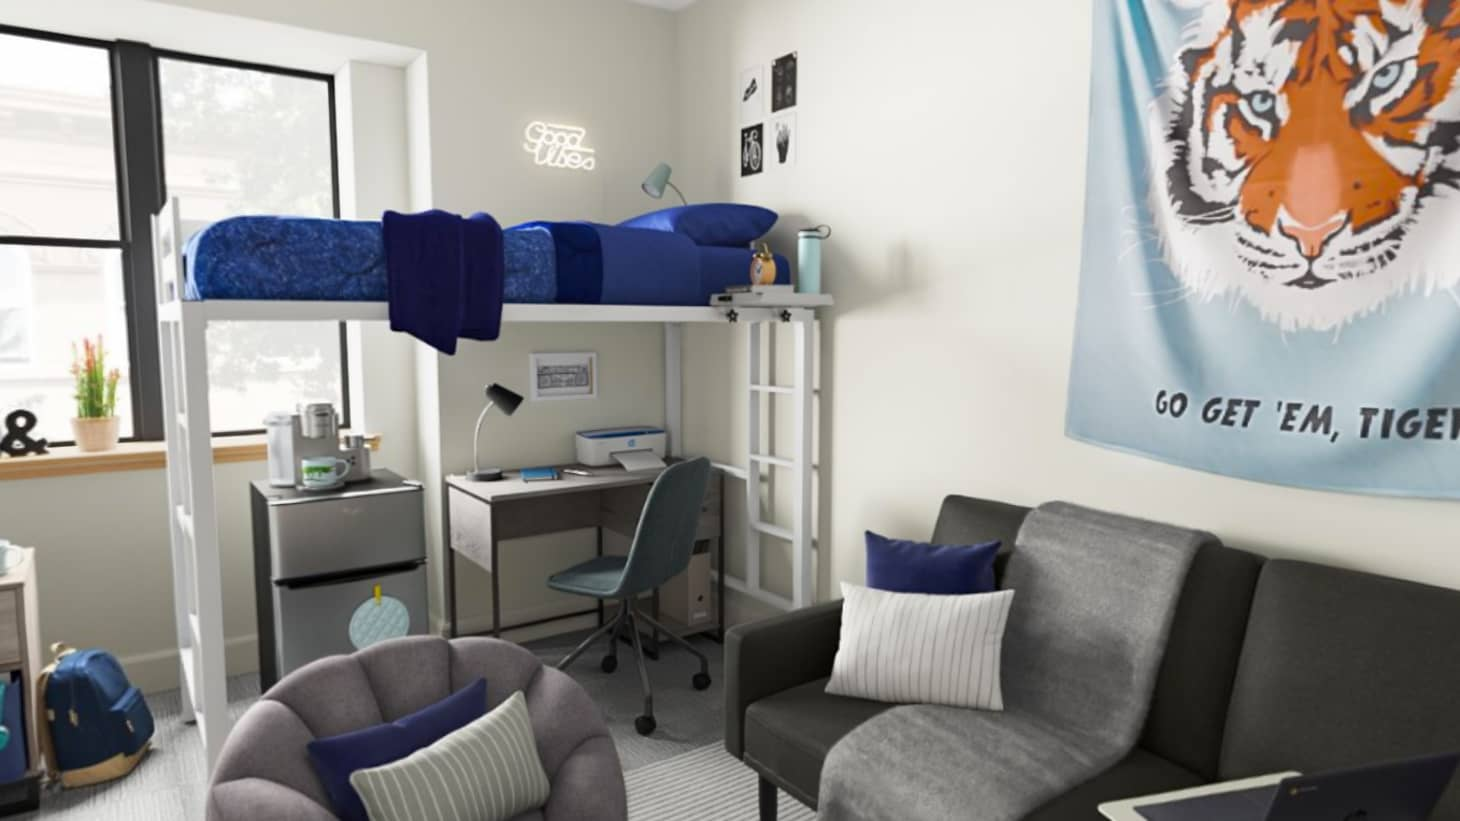 10 Tips for Organizing Your Tiny Dorm Room | Apartment Therapy